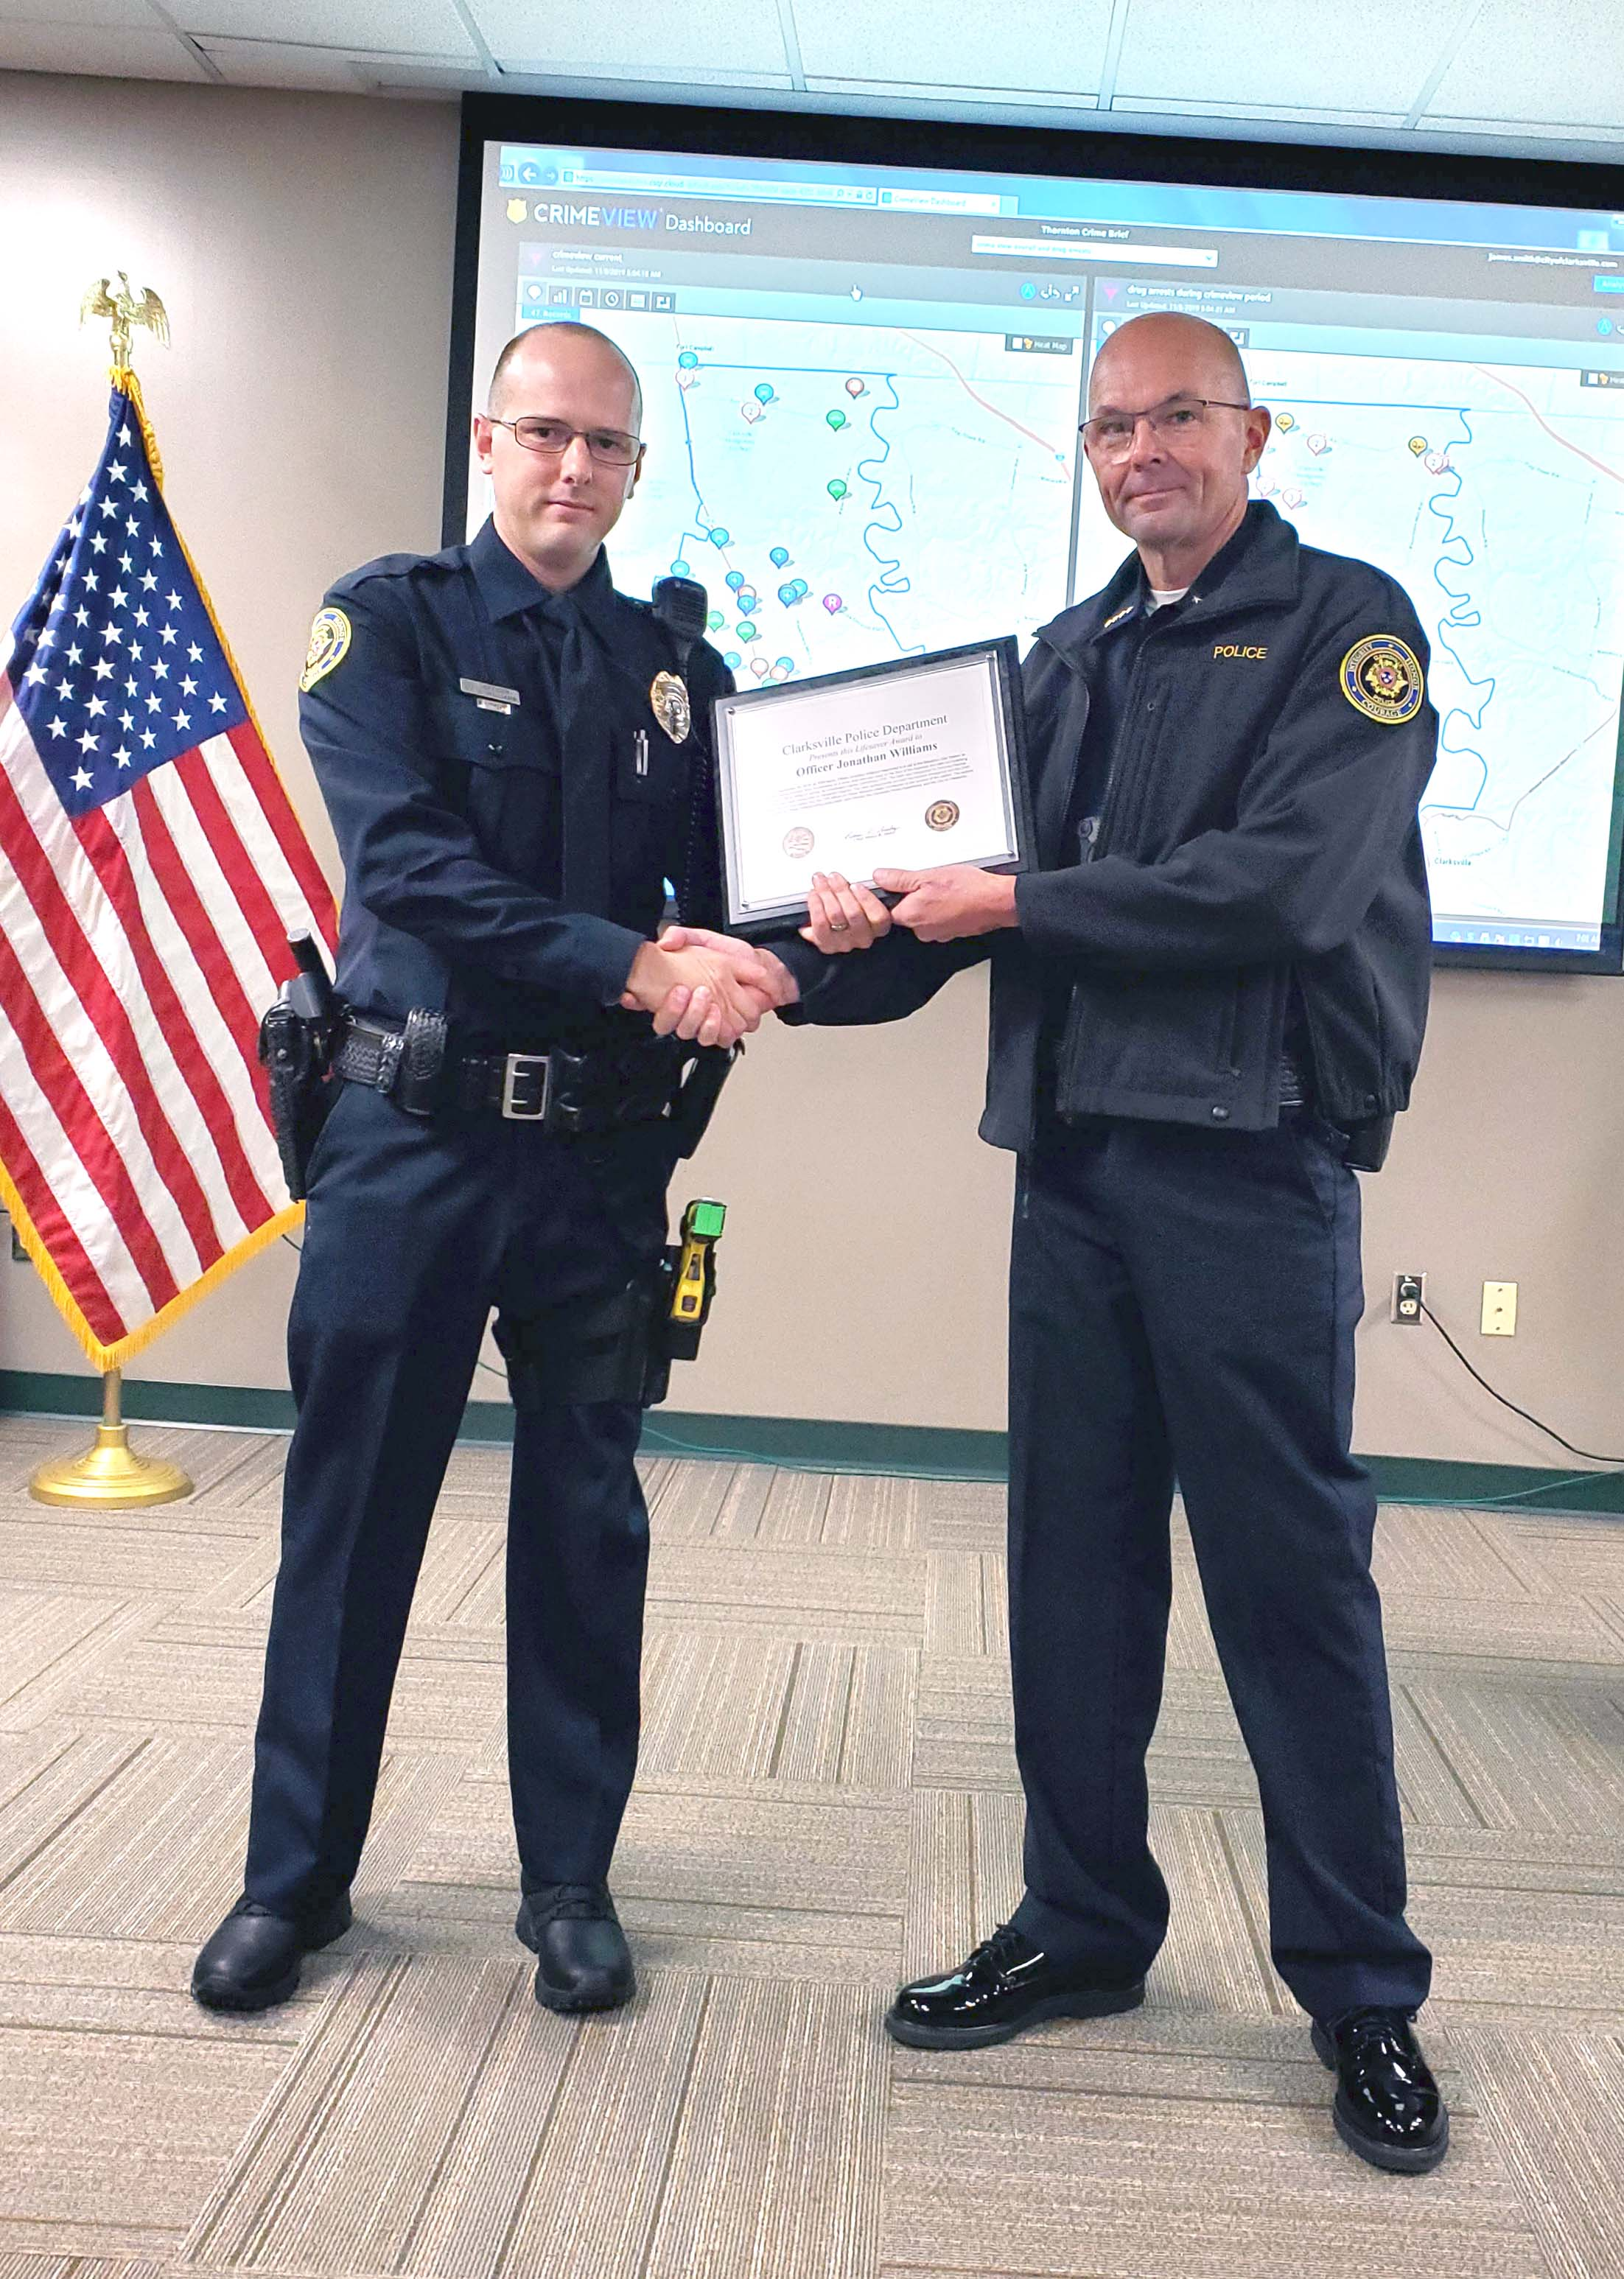 CPD lifesaver award